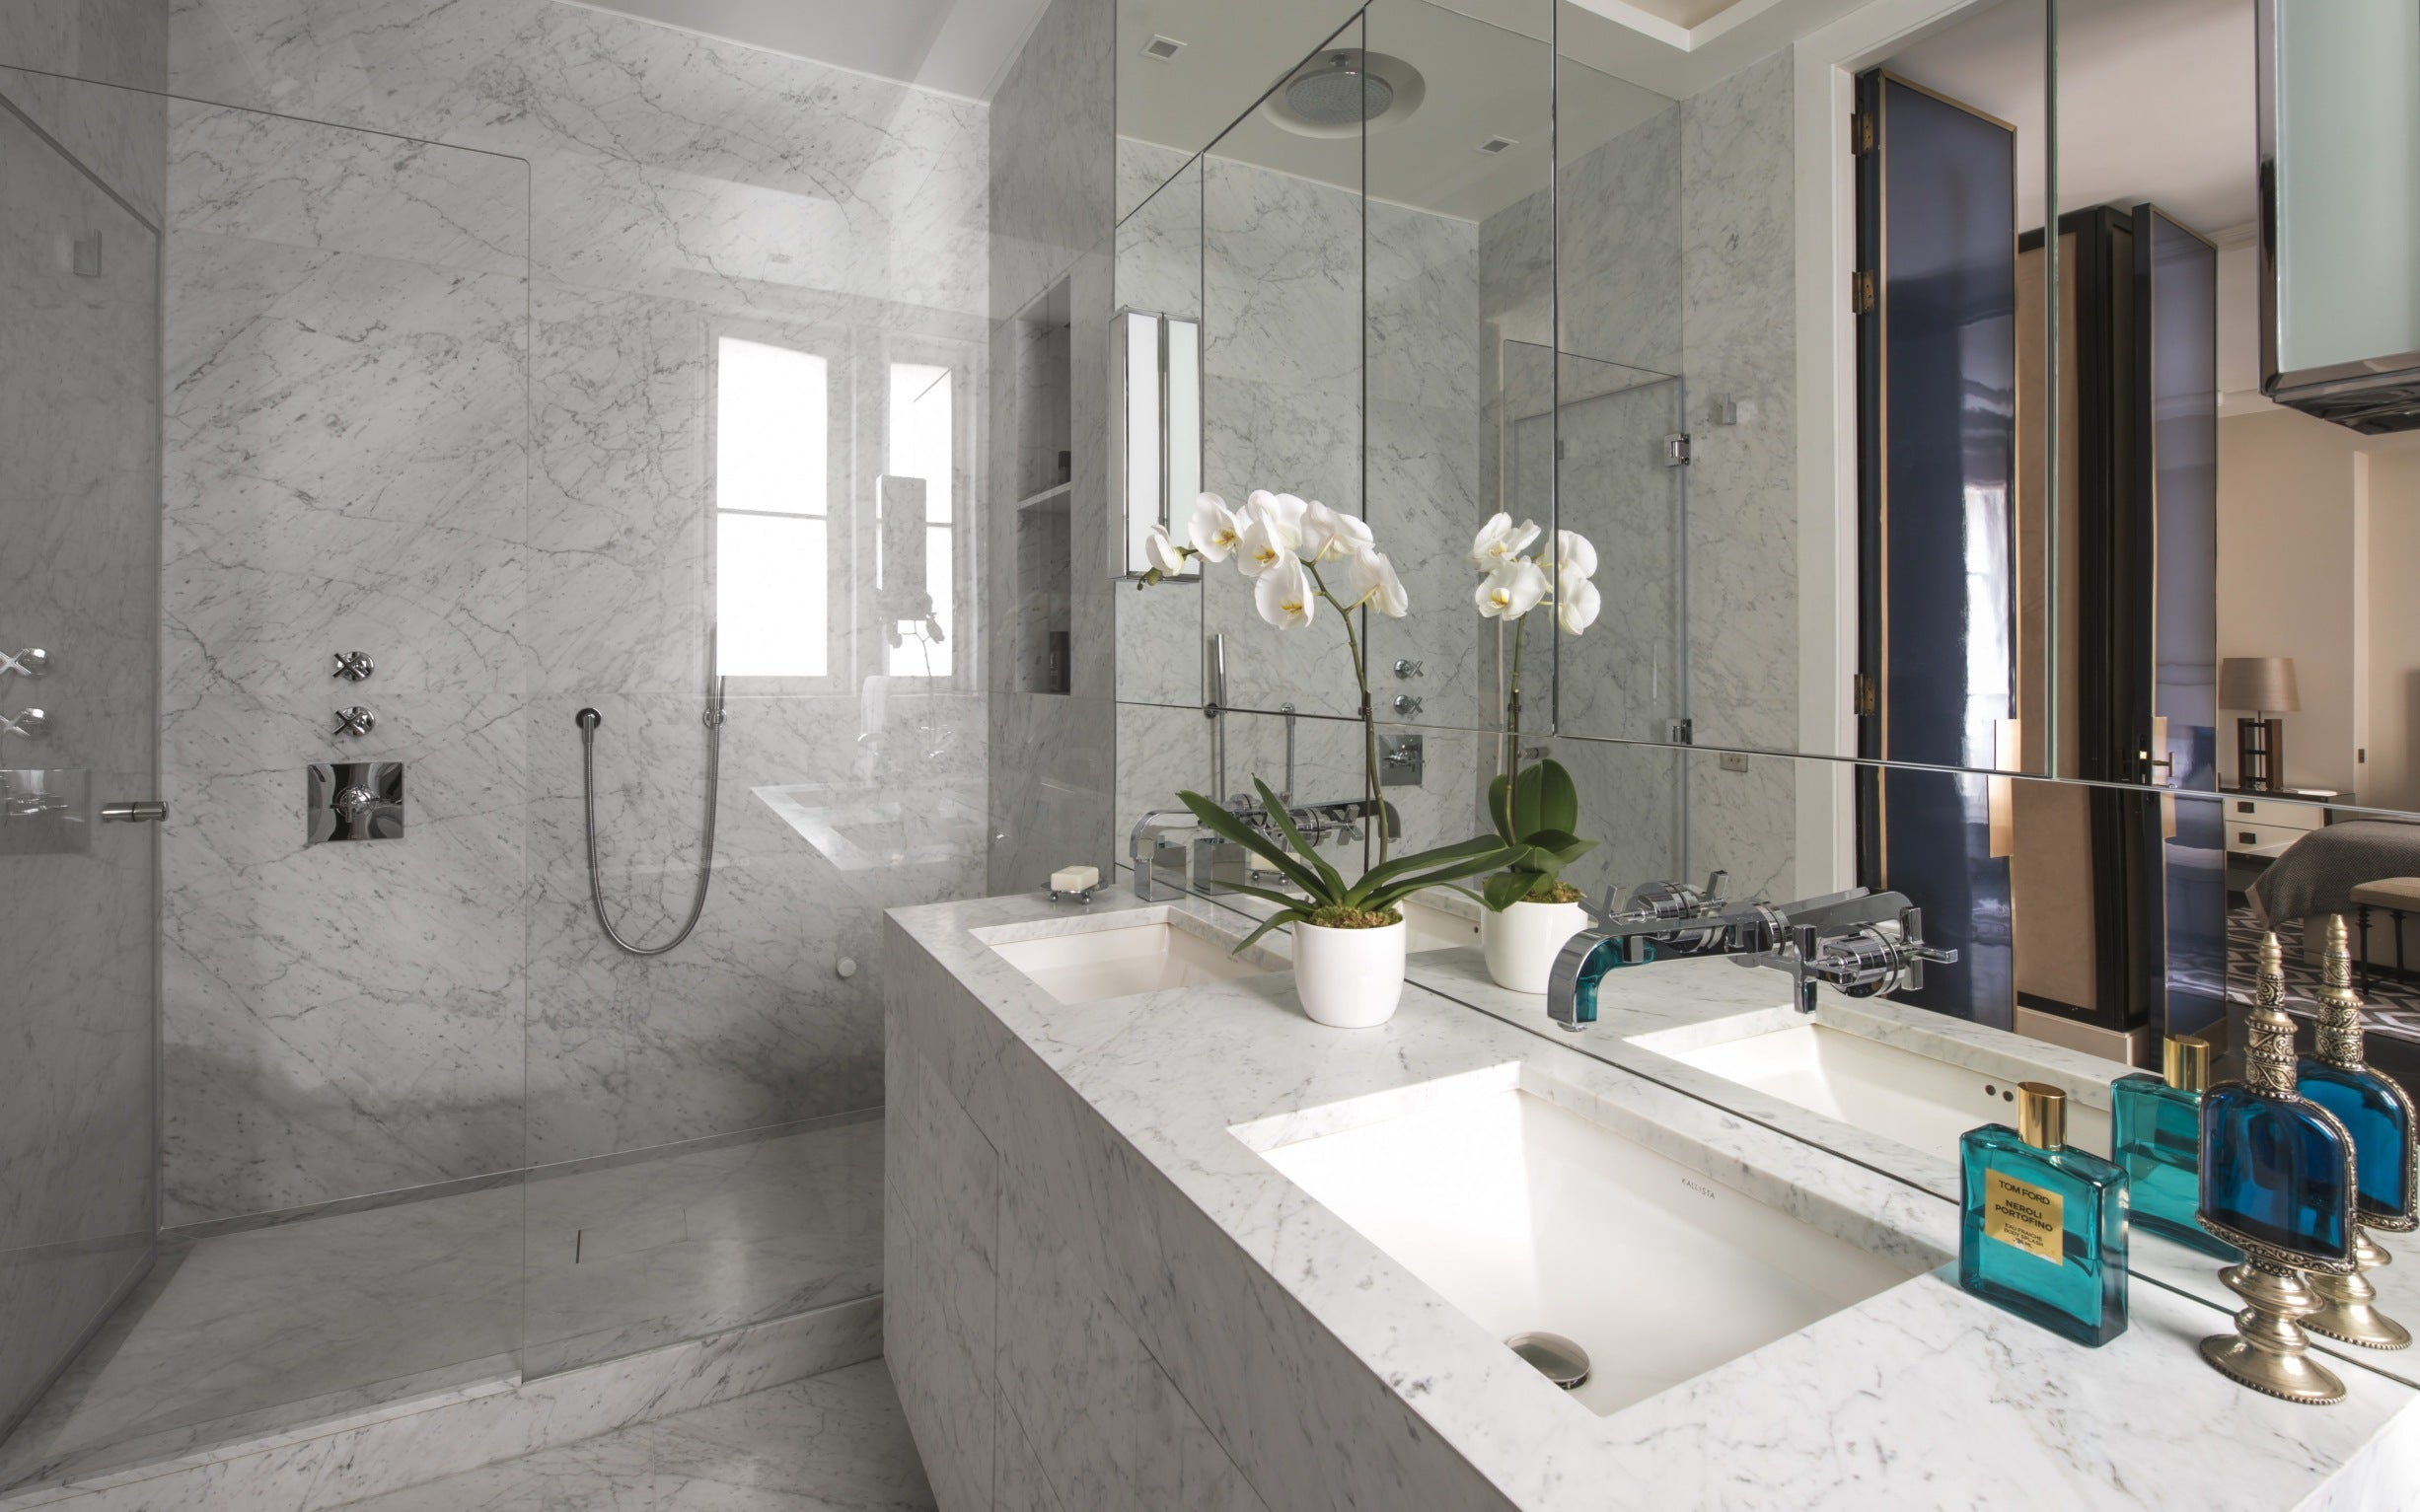 Discover Champeau & Wilde's Nouvelle Athenes Project in Paris - Master Bathroom - LuxDeco.com